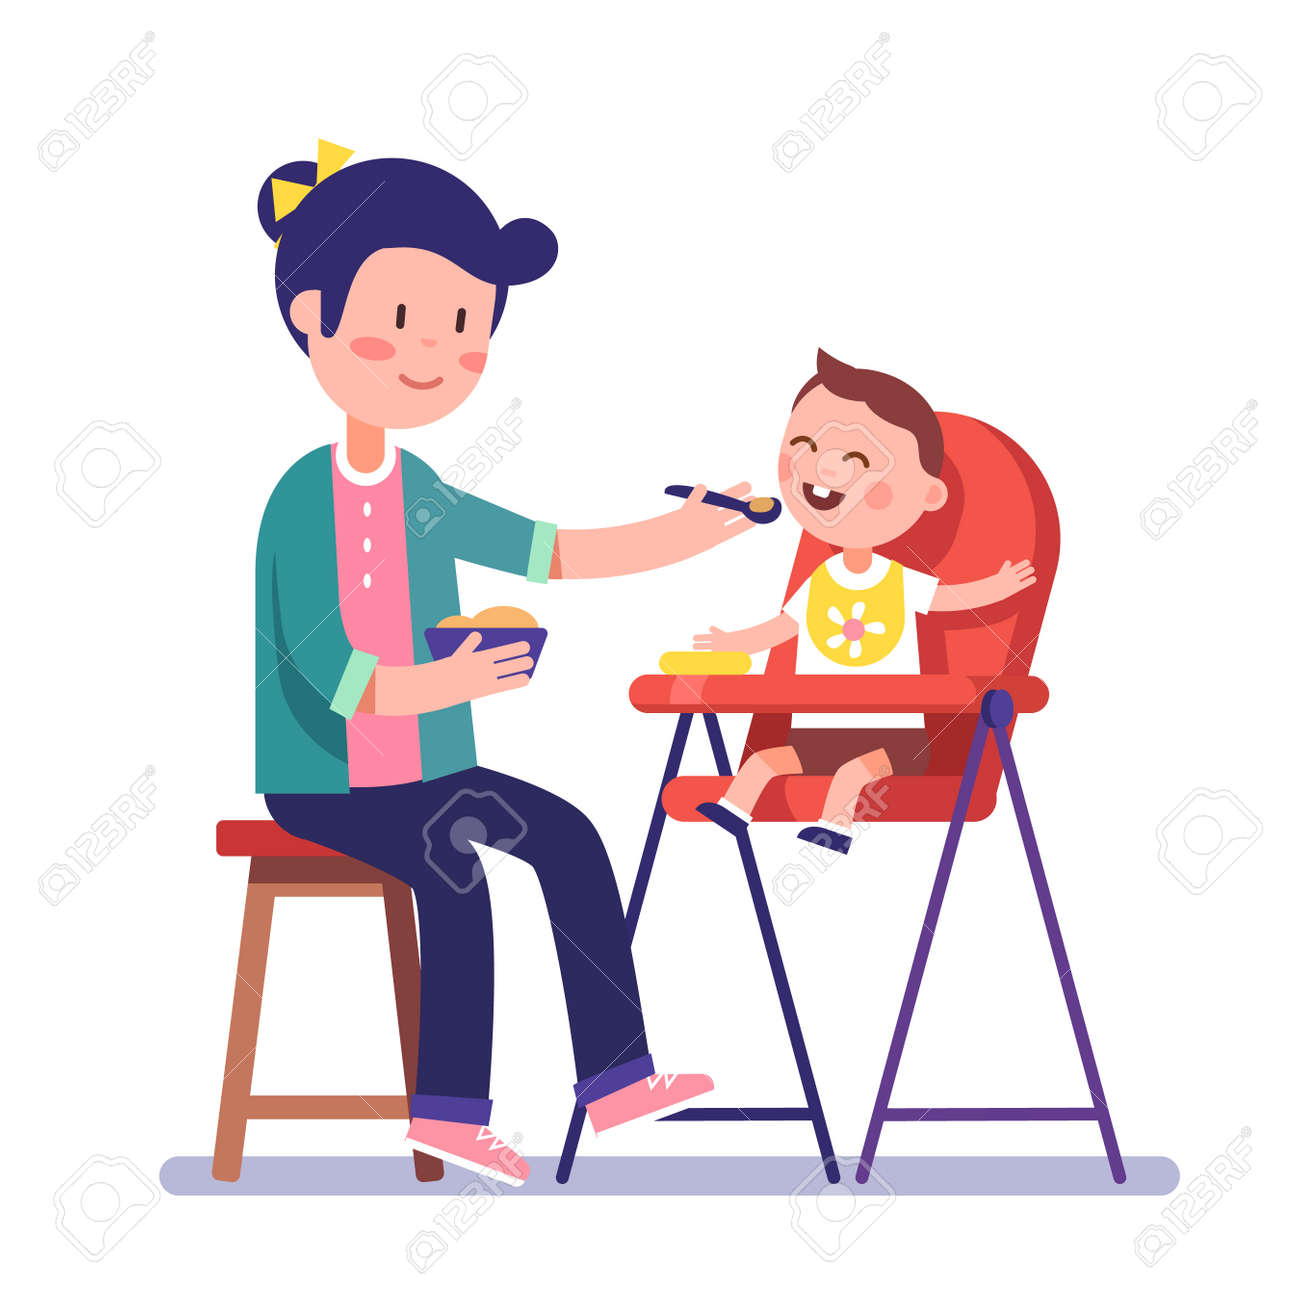 mother feeding her baby child sitting on kids eating chair. holding